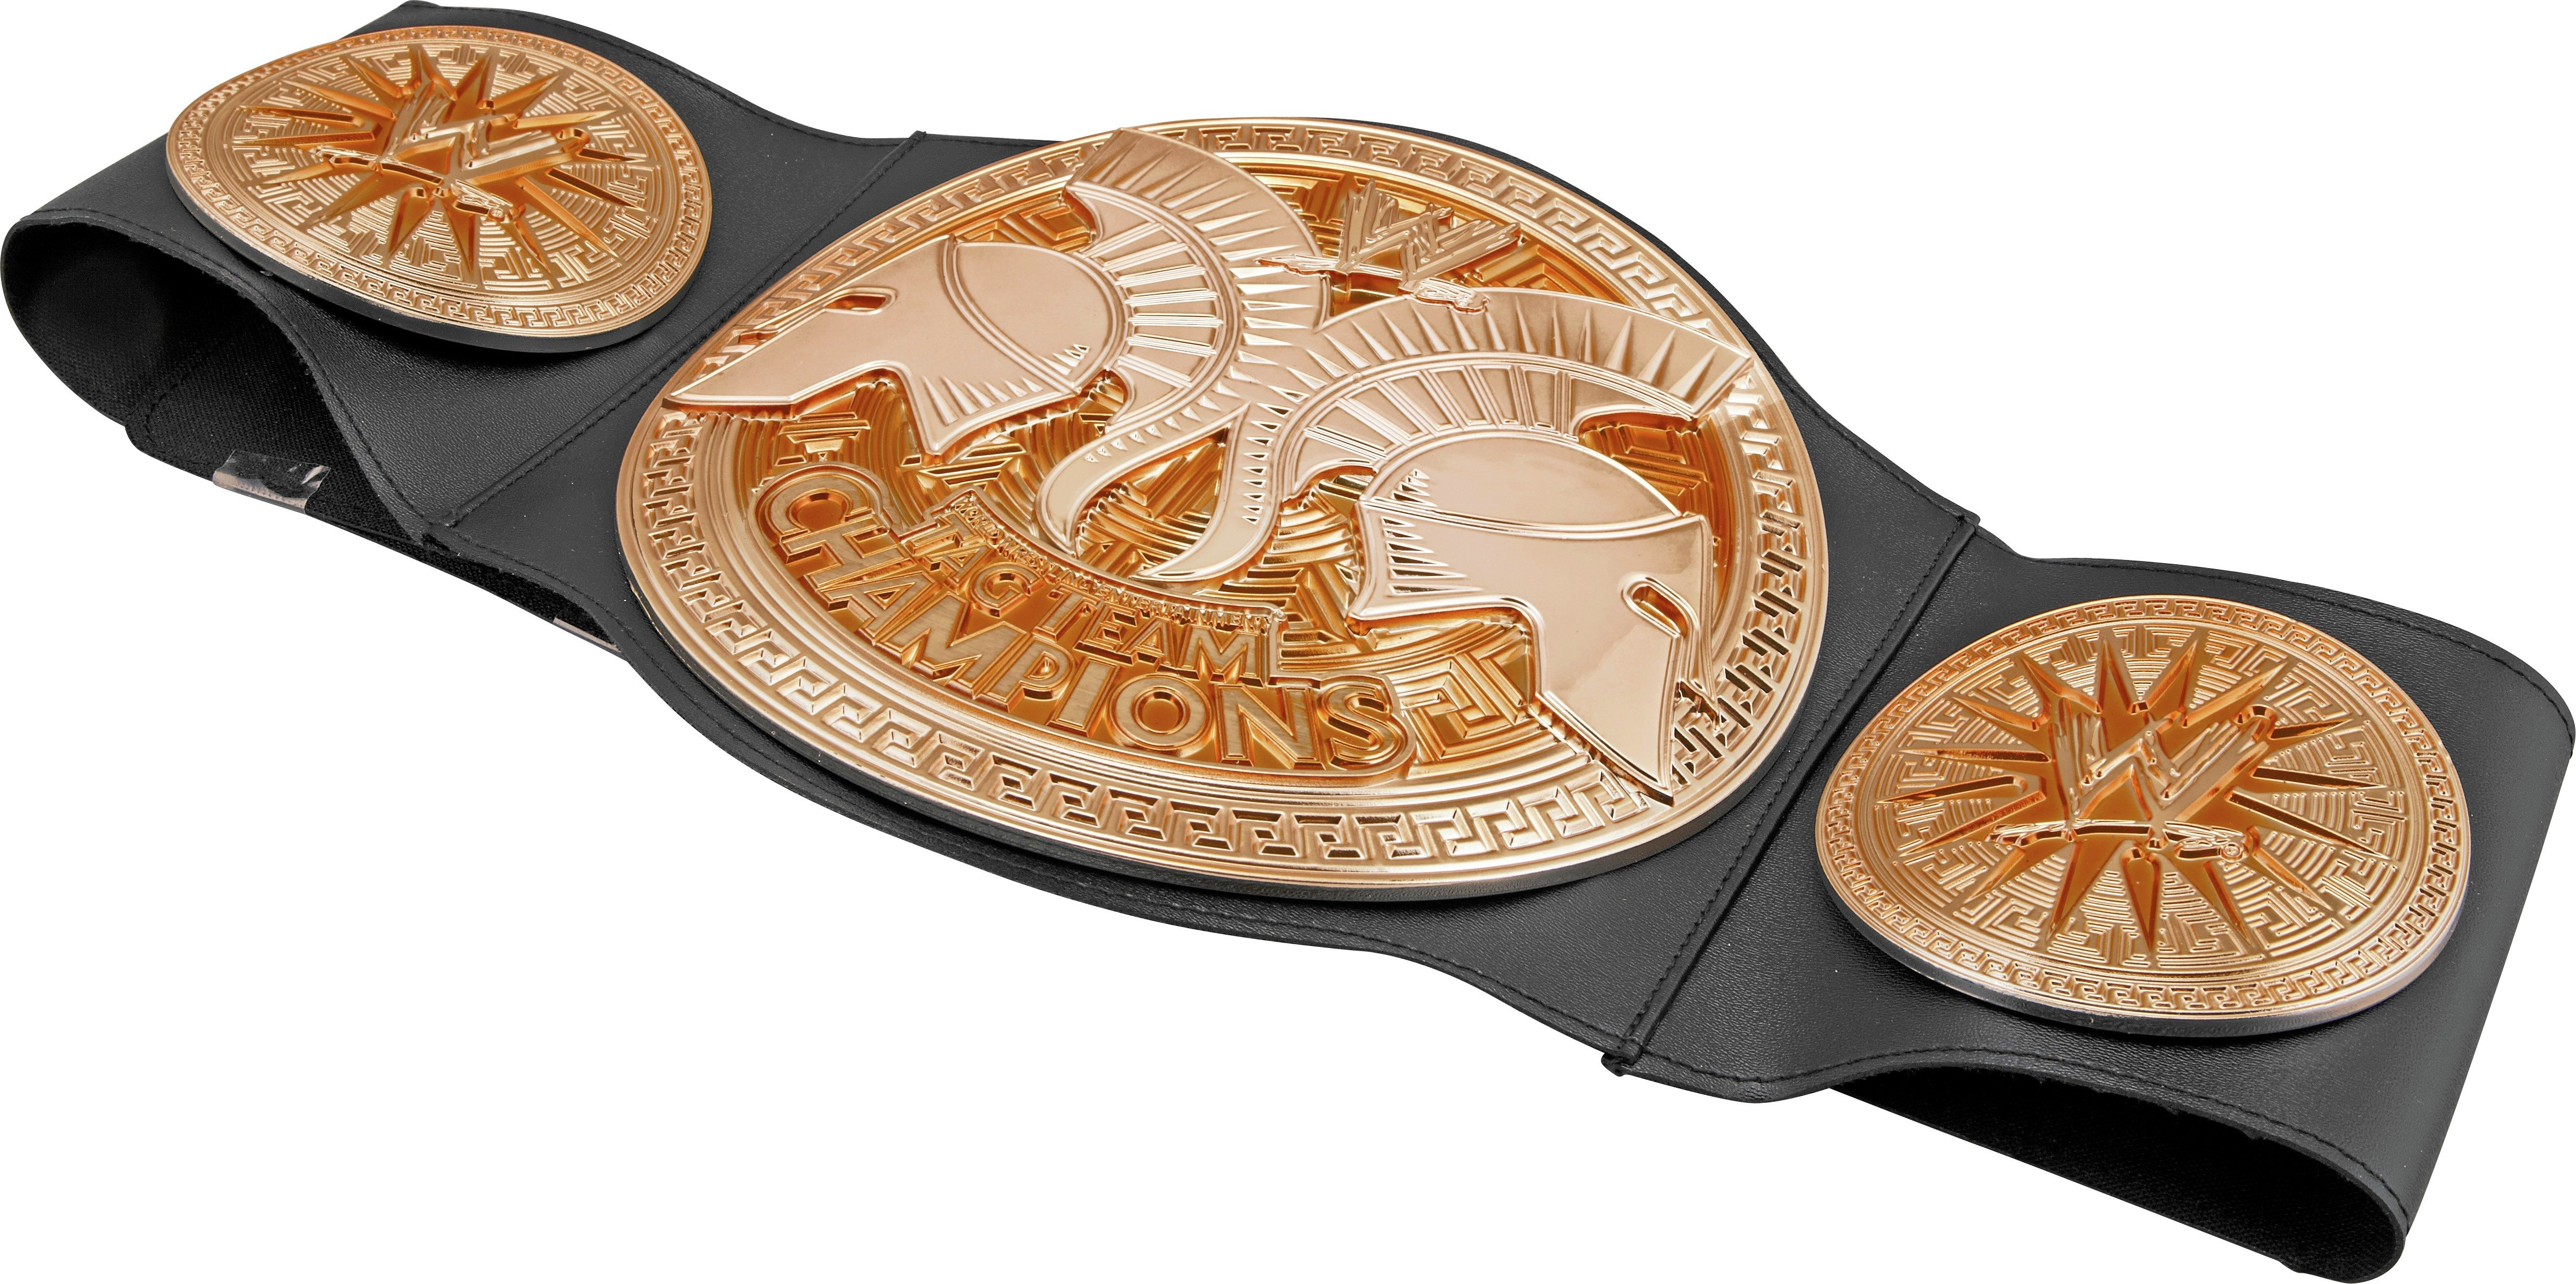 WWE Championship Belts Assortment